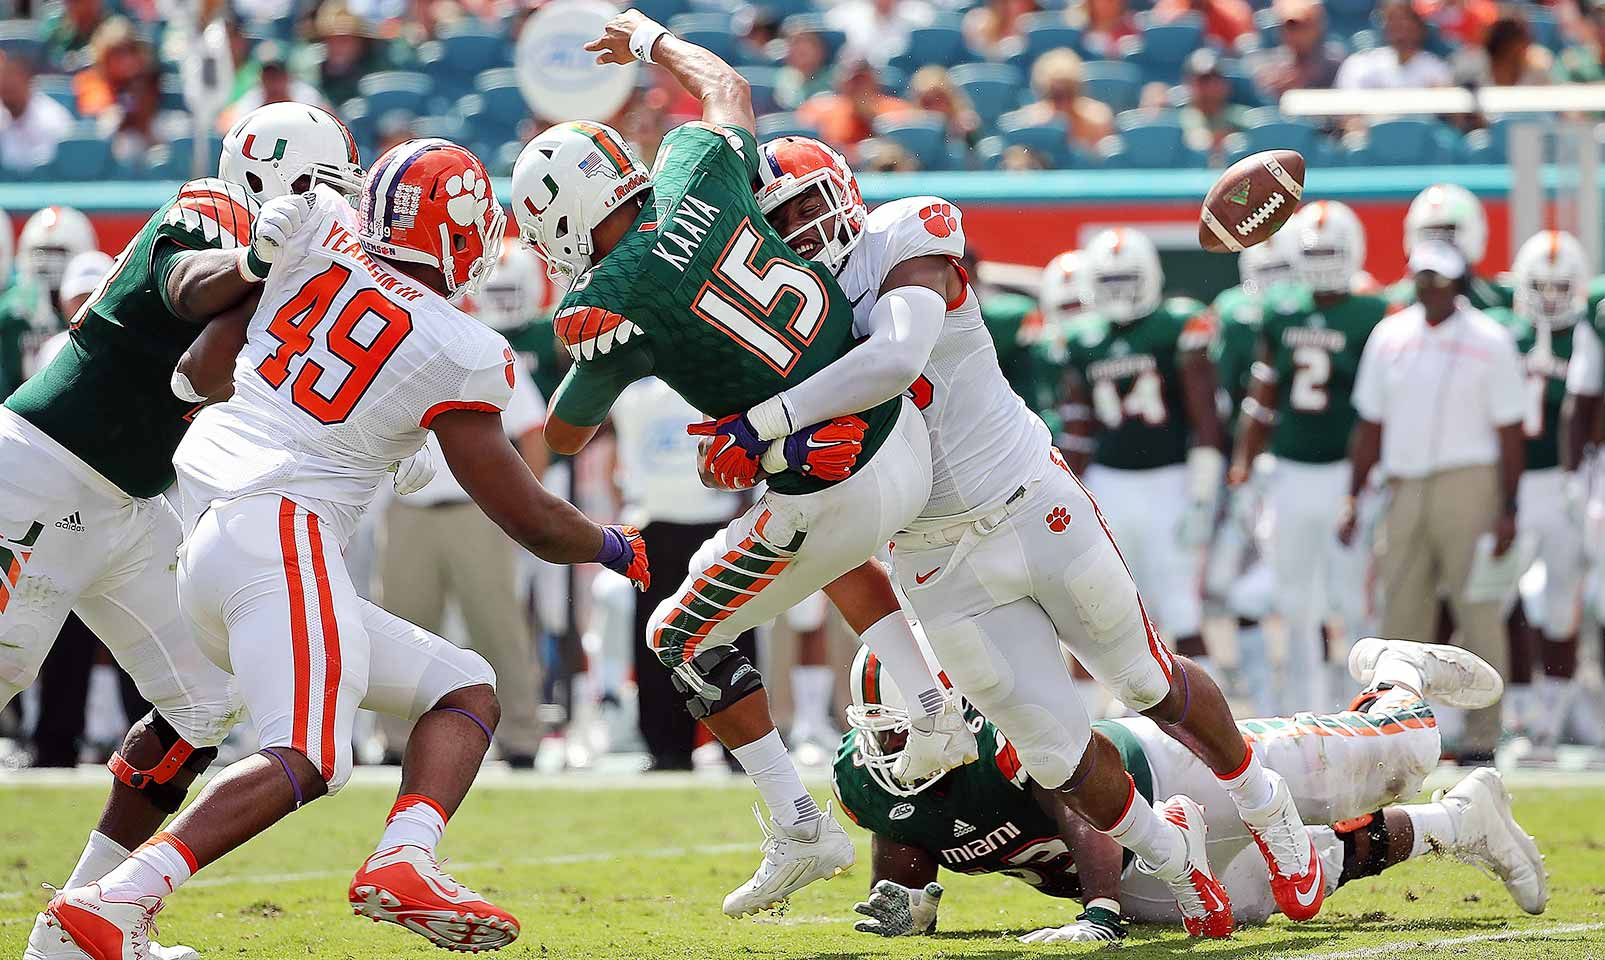 Clemson 58, Miami 0: The Tigers pummeled the Hurricanes so badly, Miami opted to fire coach Al Golden after the game. Clemson ran for 416 yards and held Miami to 146 yards of offense.